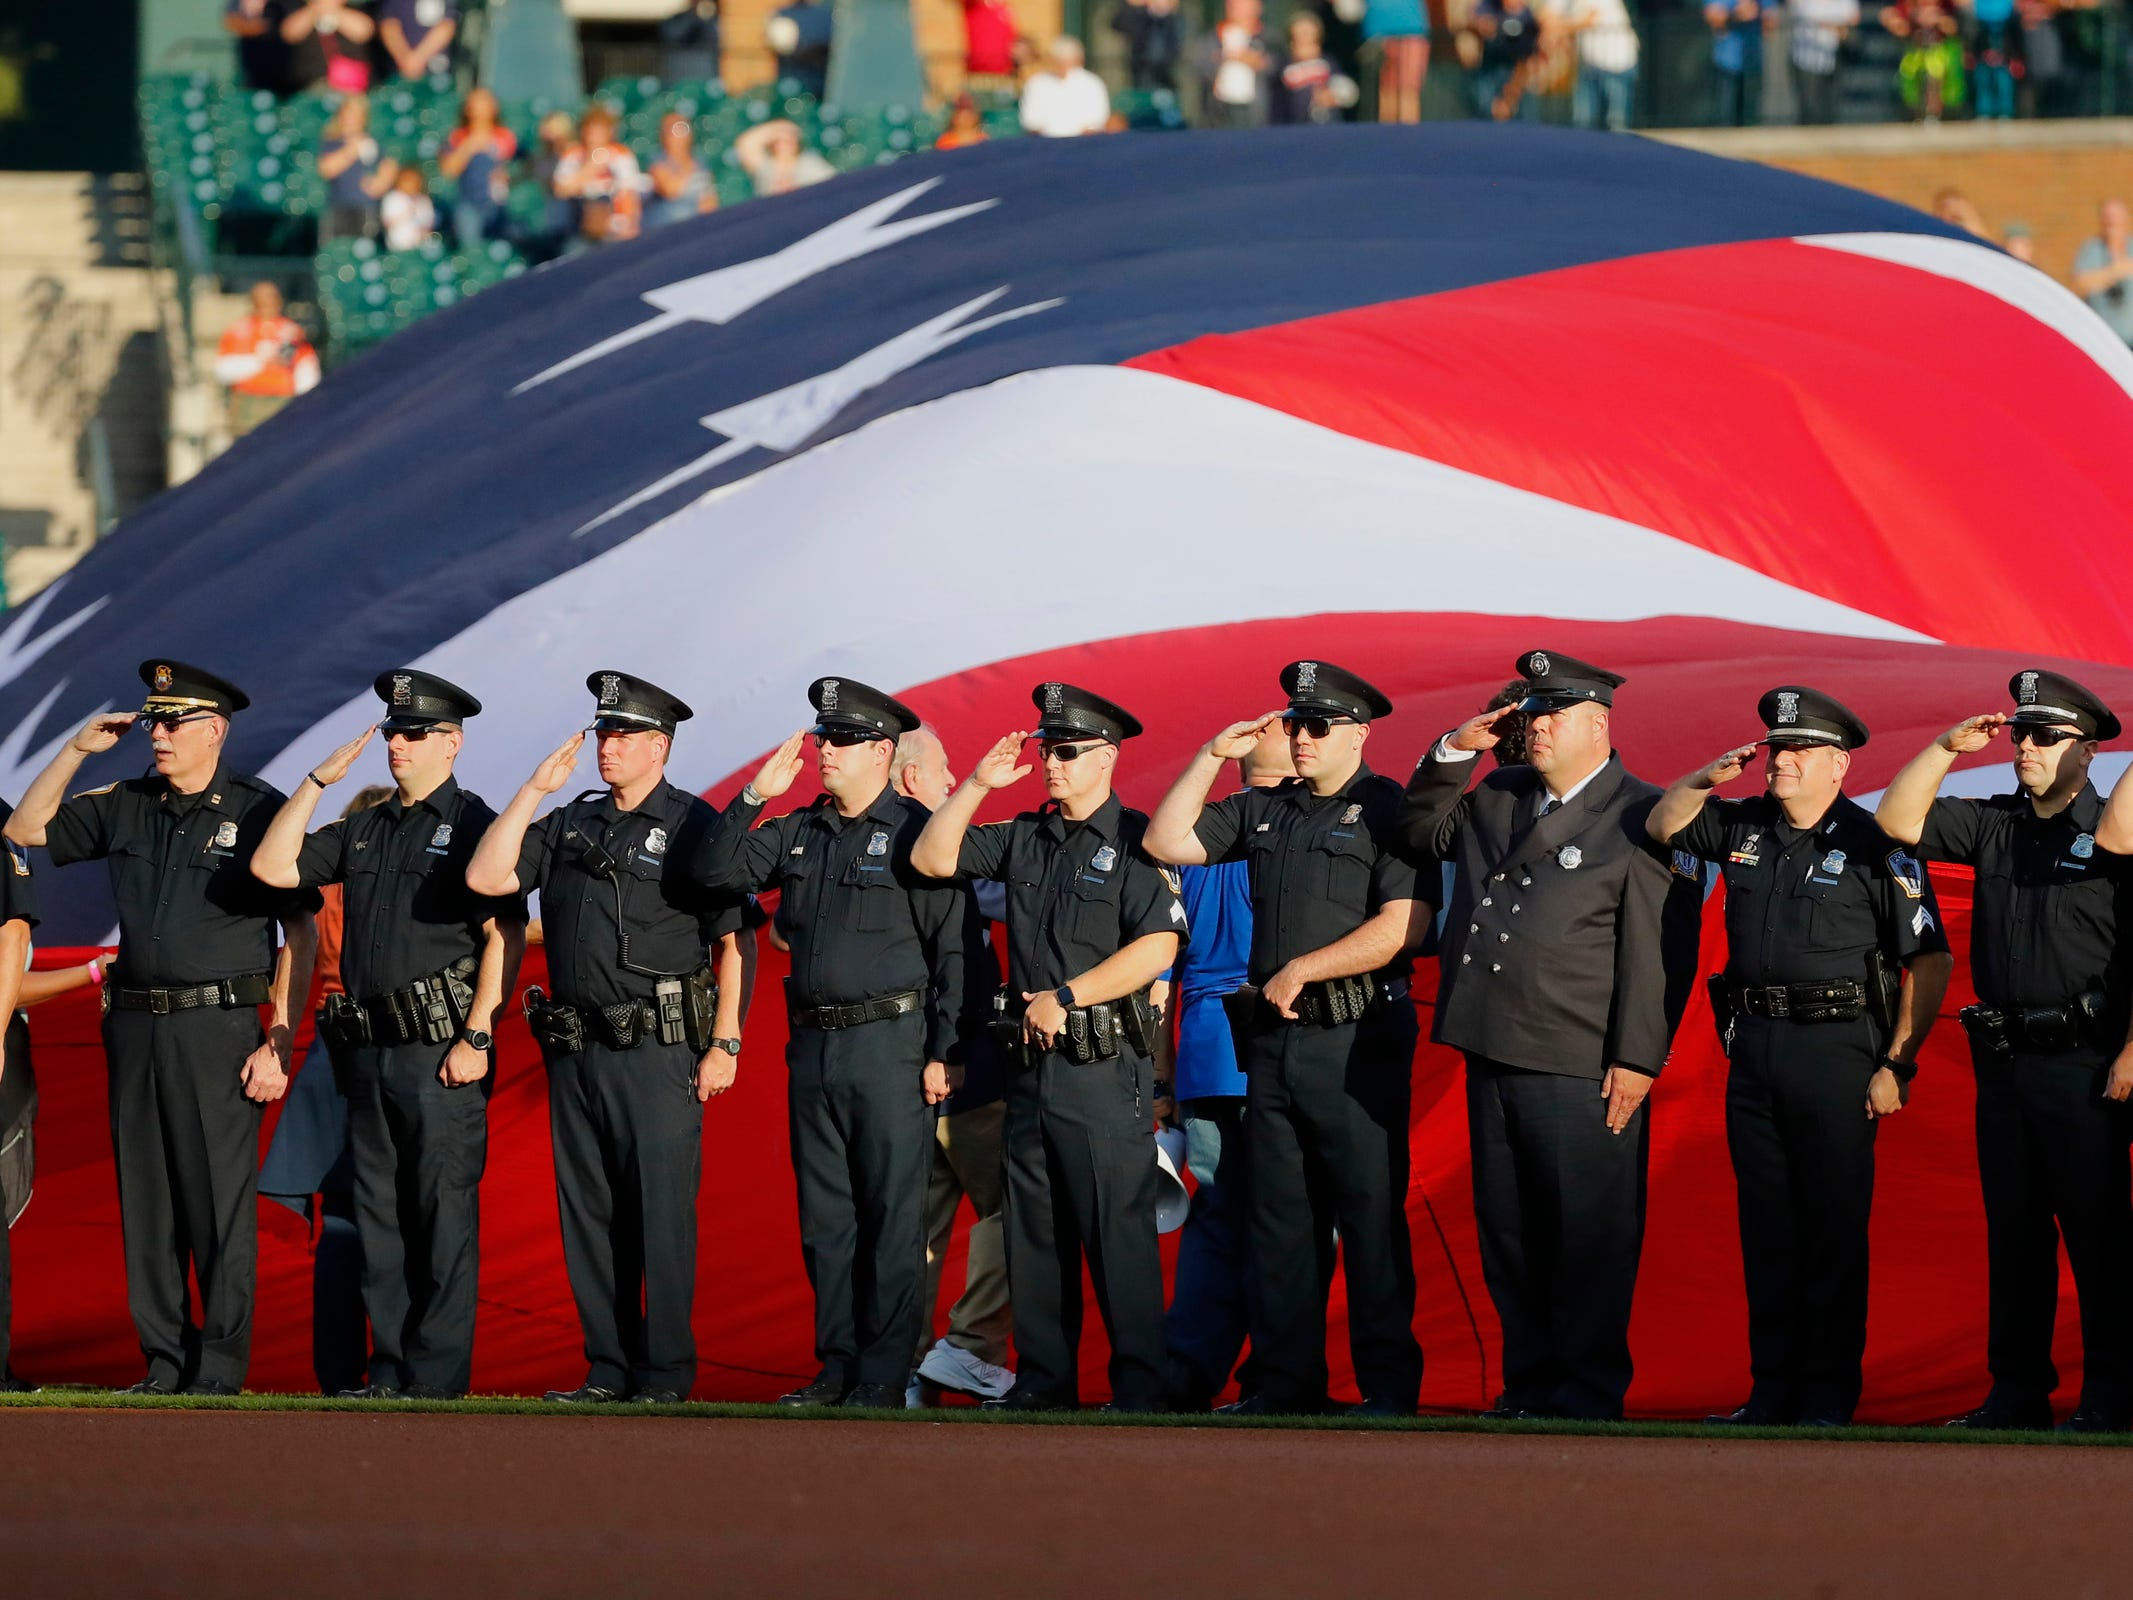 First responders salute during the national anthem prior to the game between the Detroit Tigers and the Houston Astros at Comerica Park, Tuesday, Sept. 11, 2018.